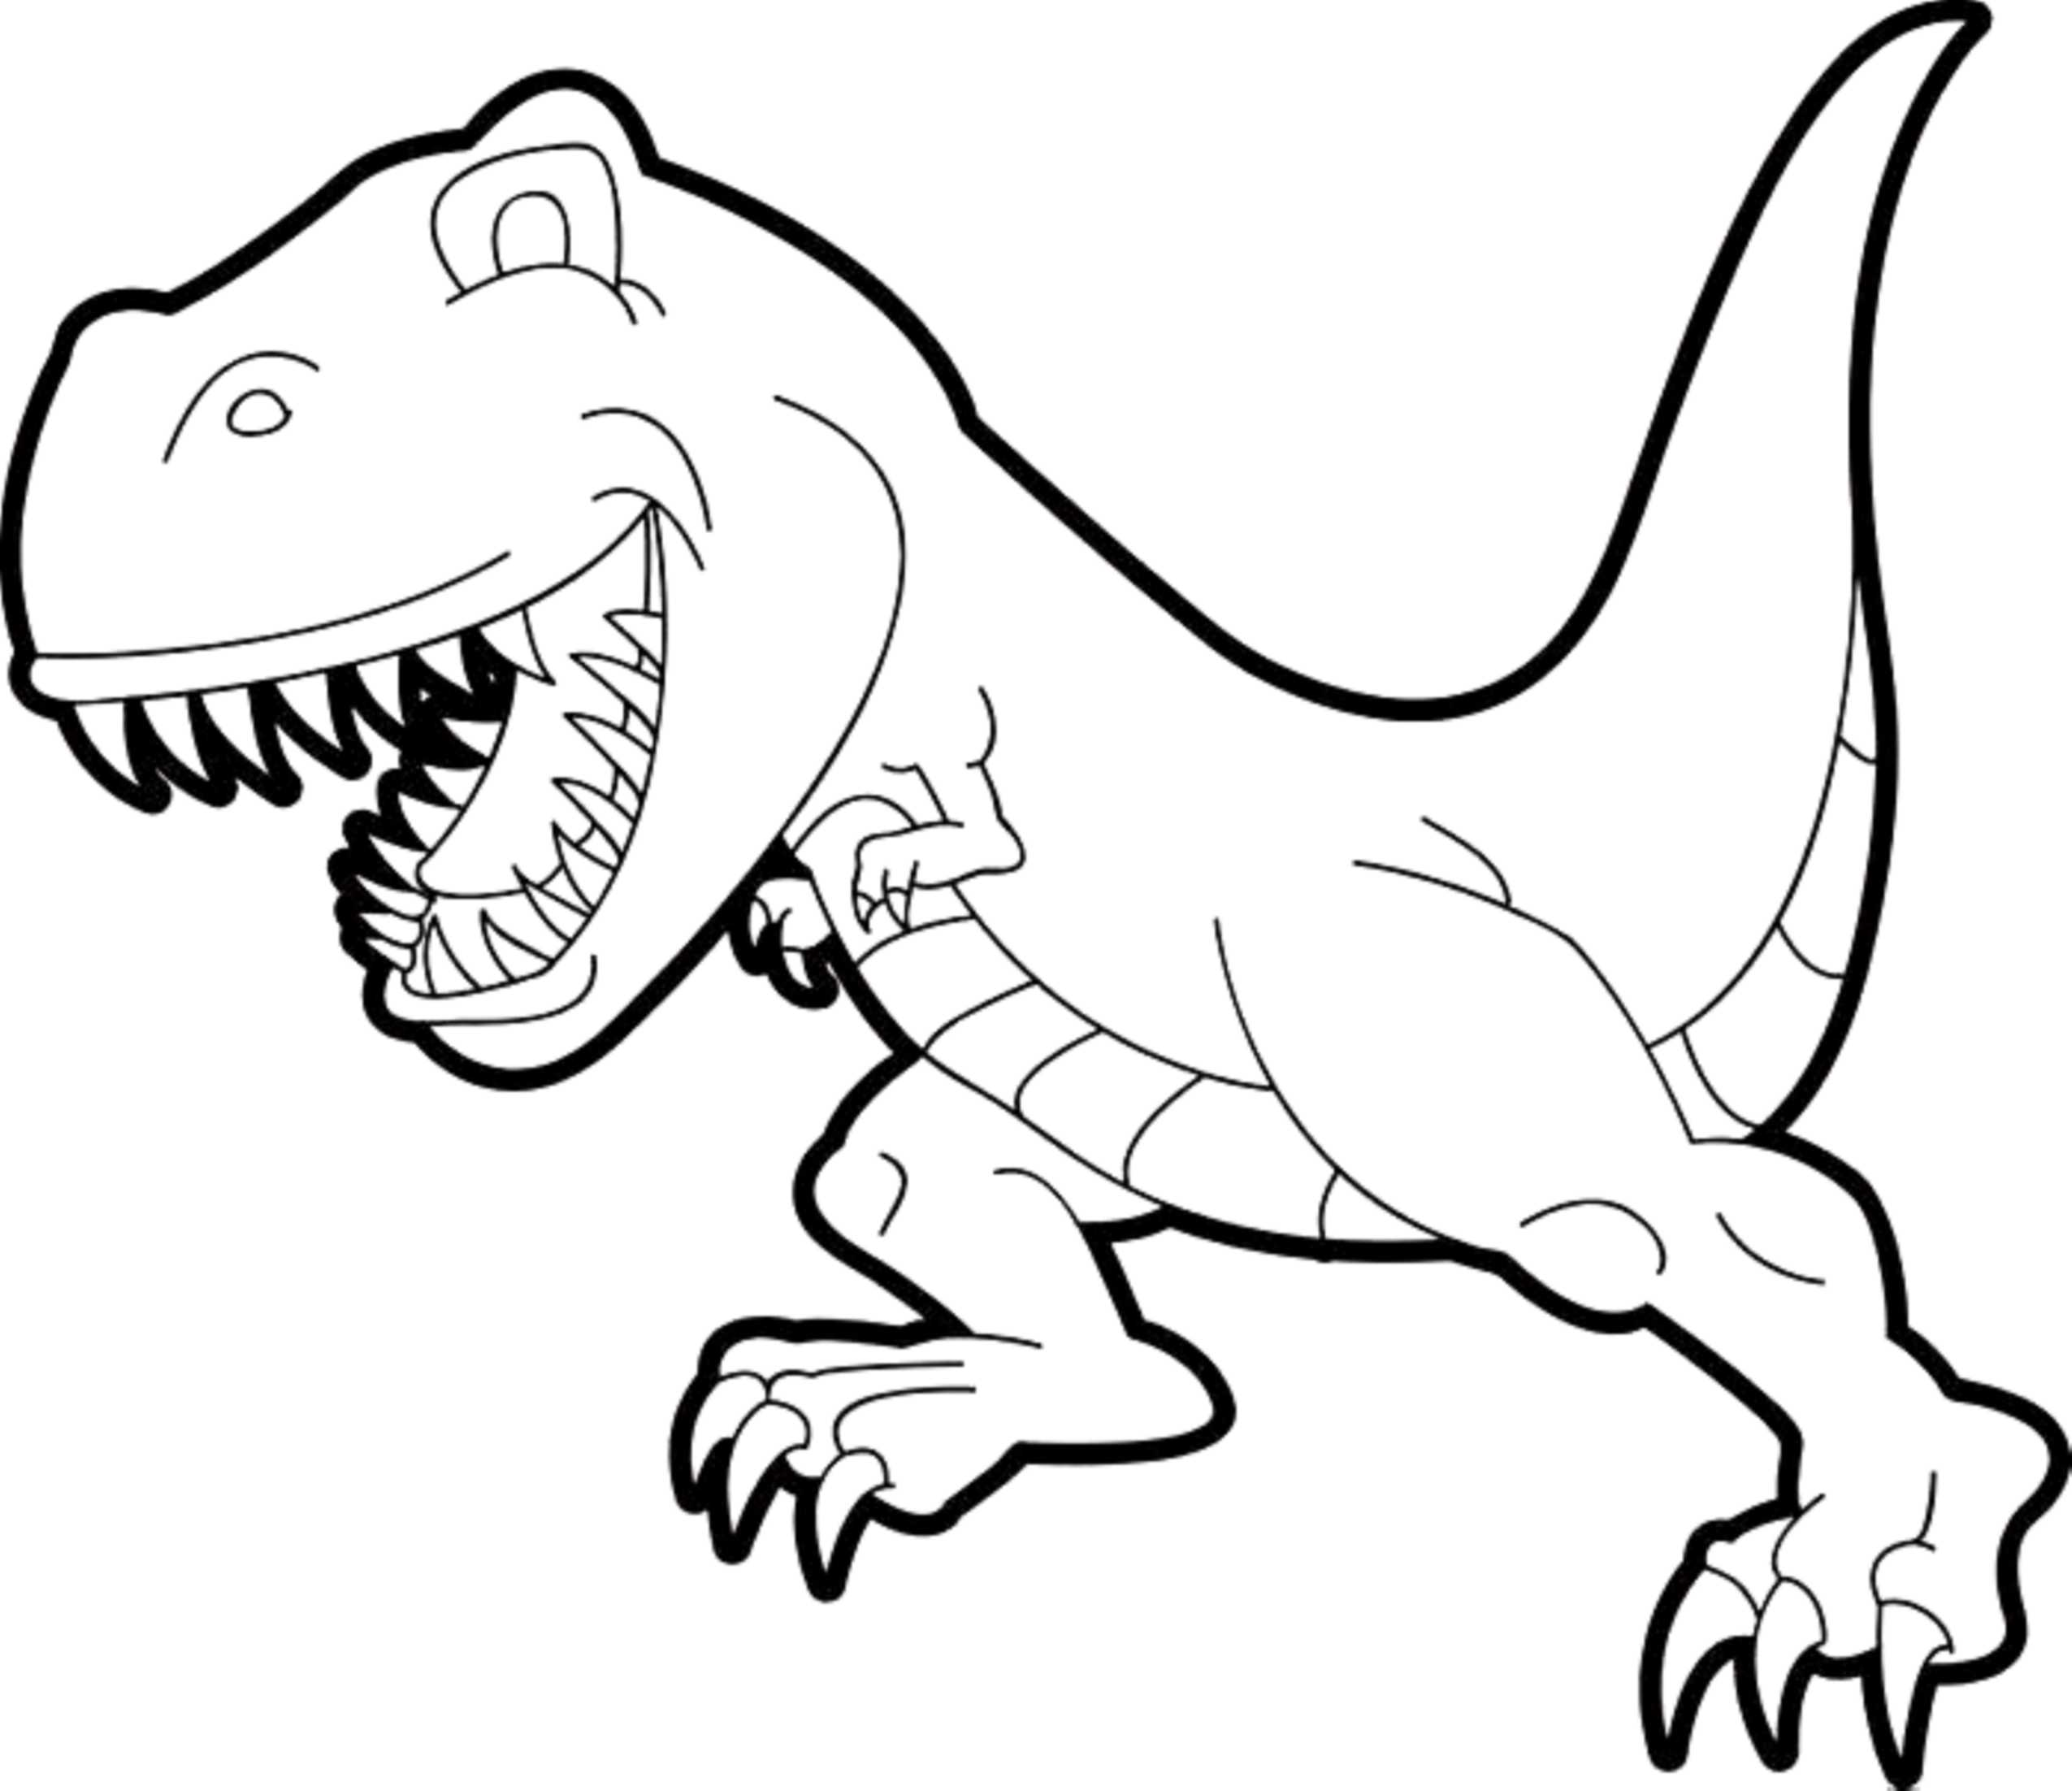 coloring dinosaurs printable dinosaur coloring pages for kids cool2bkids dinosaurs coloring